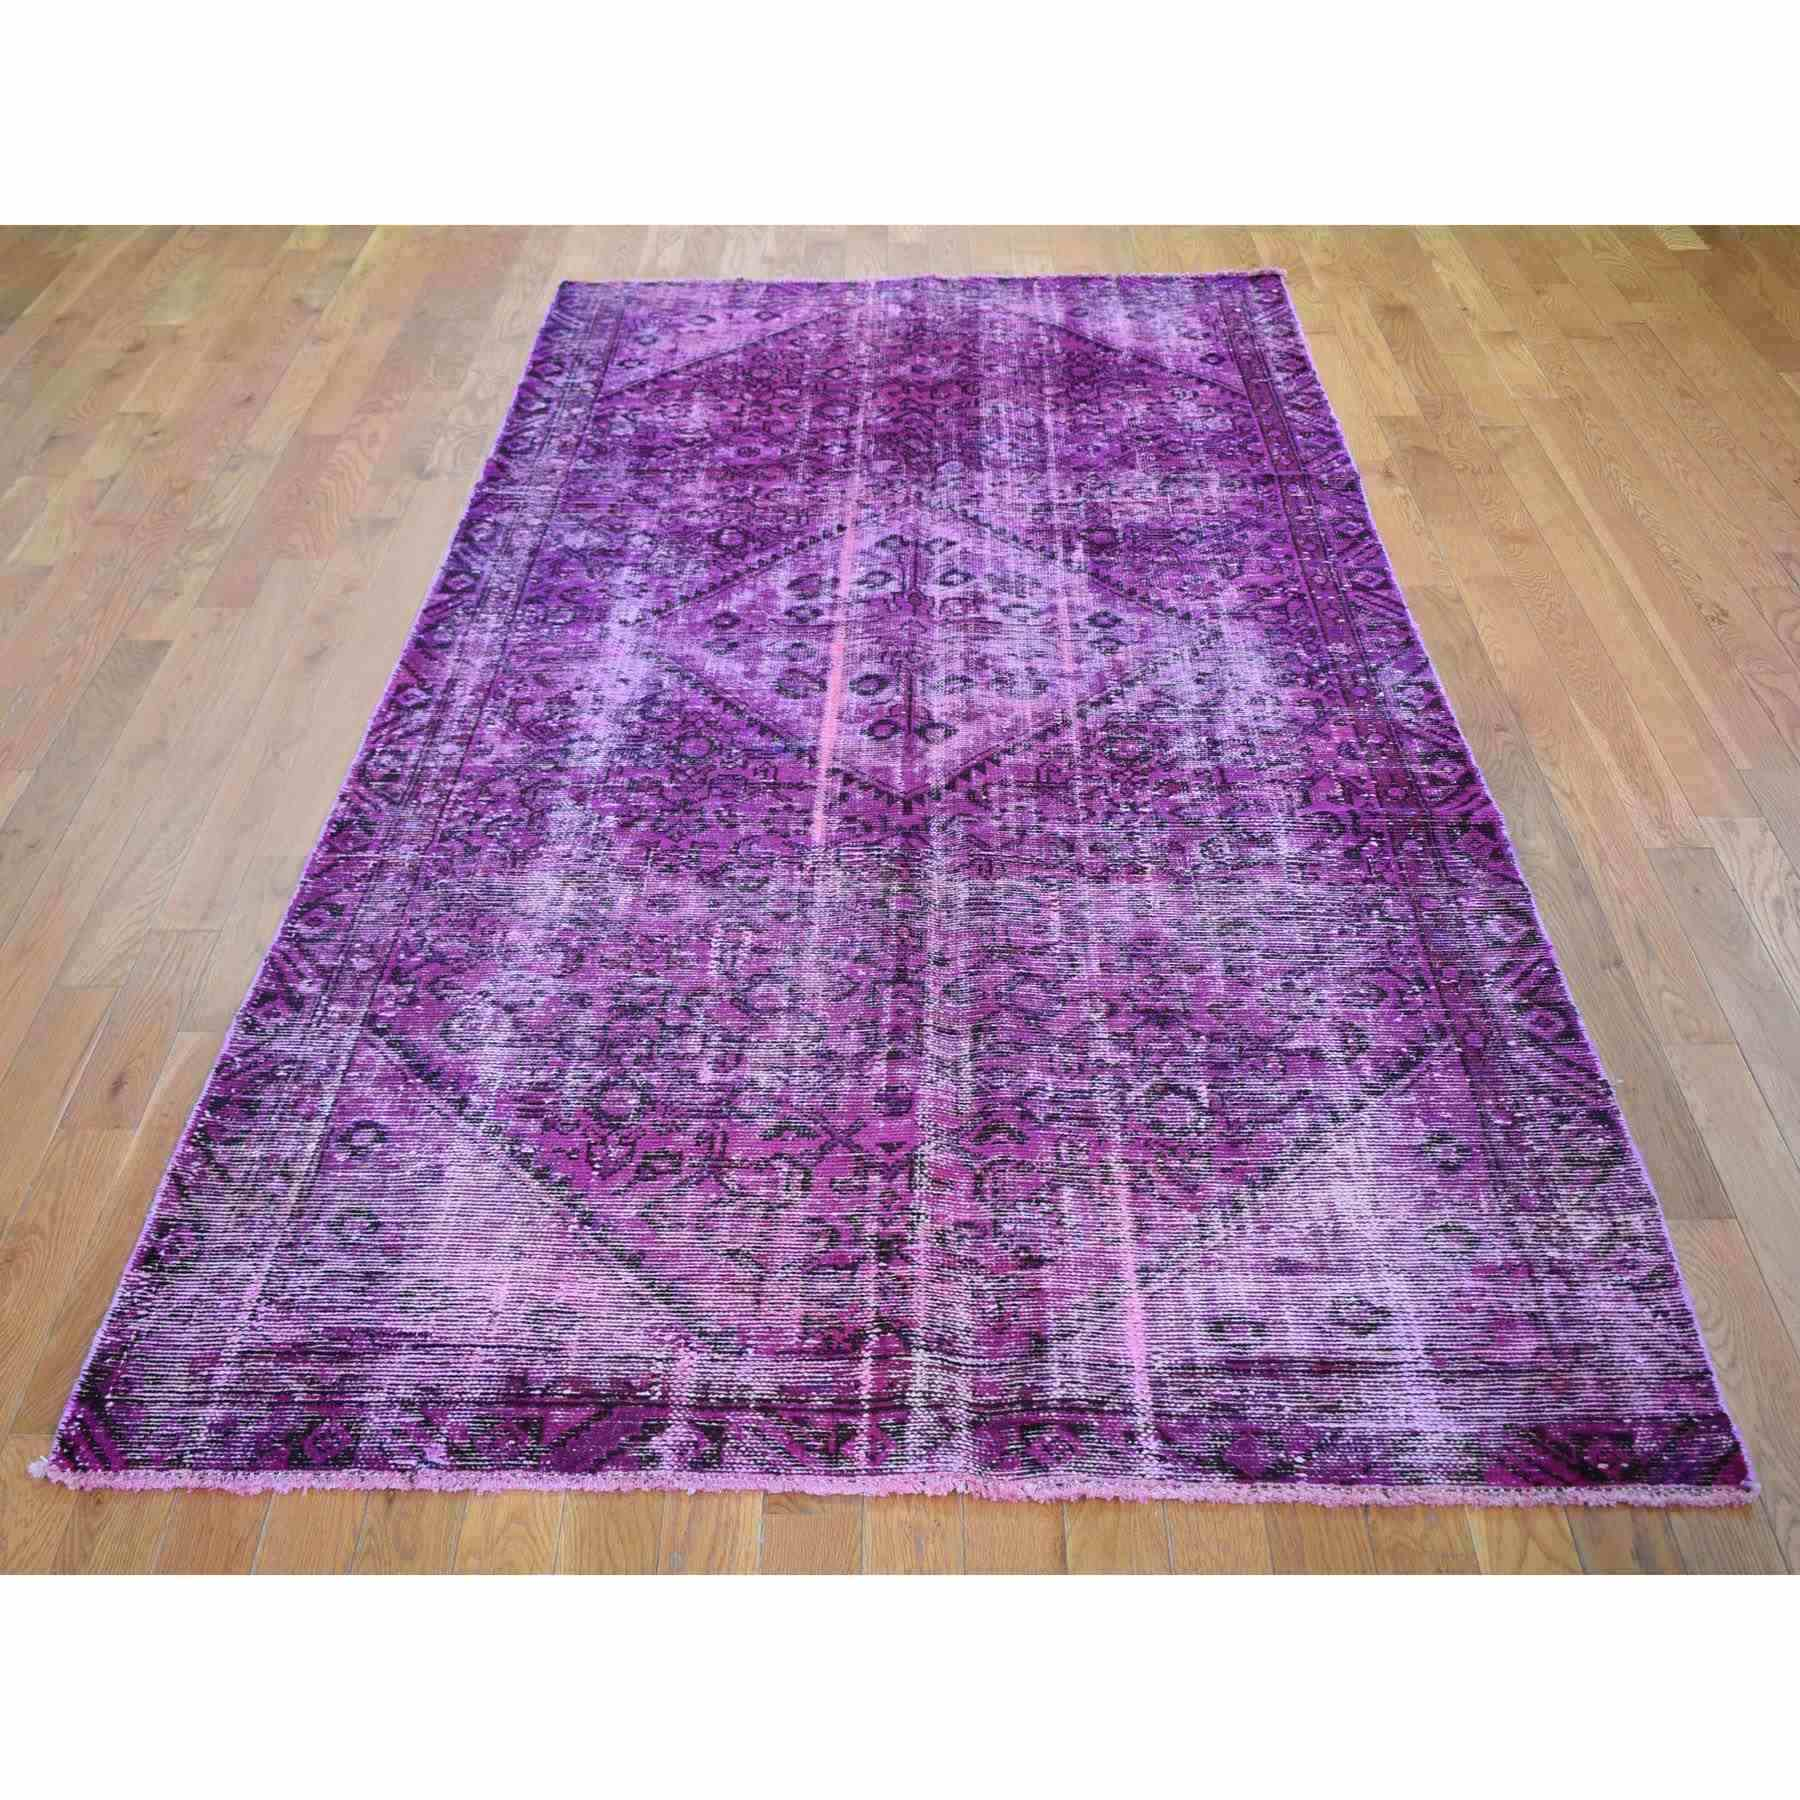 Overdyed-Vintage-Hand-Knotted-Rug-295990